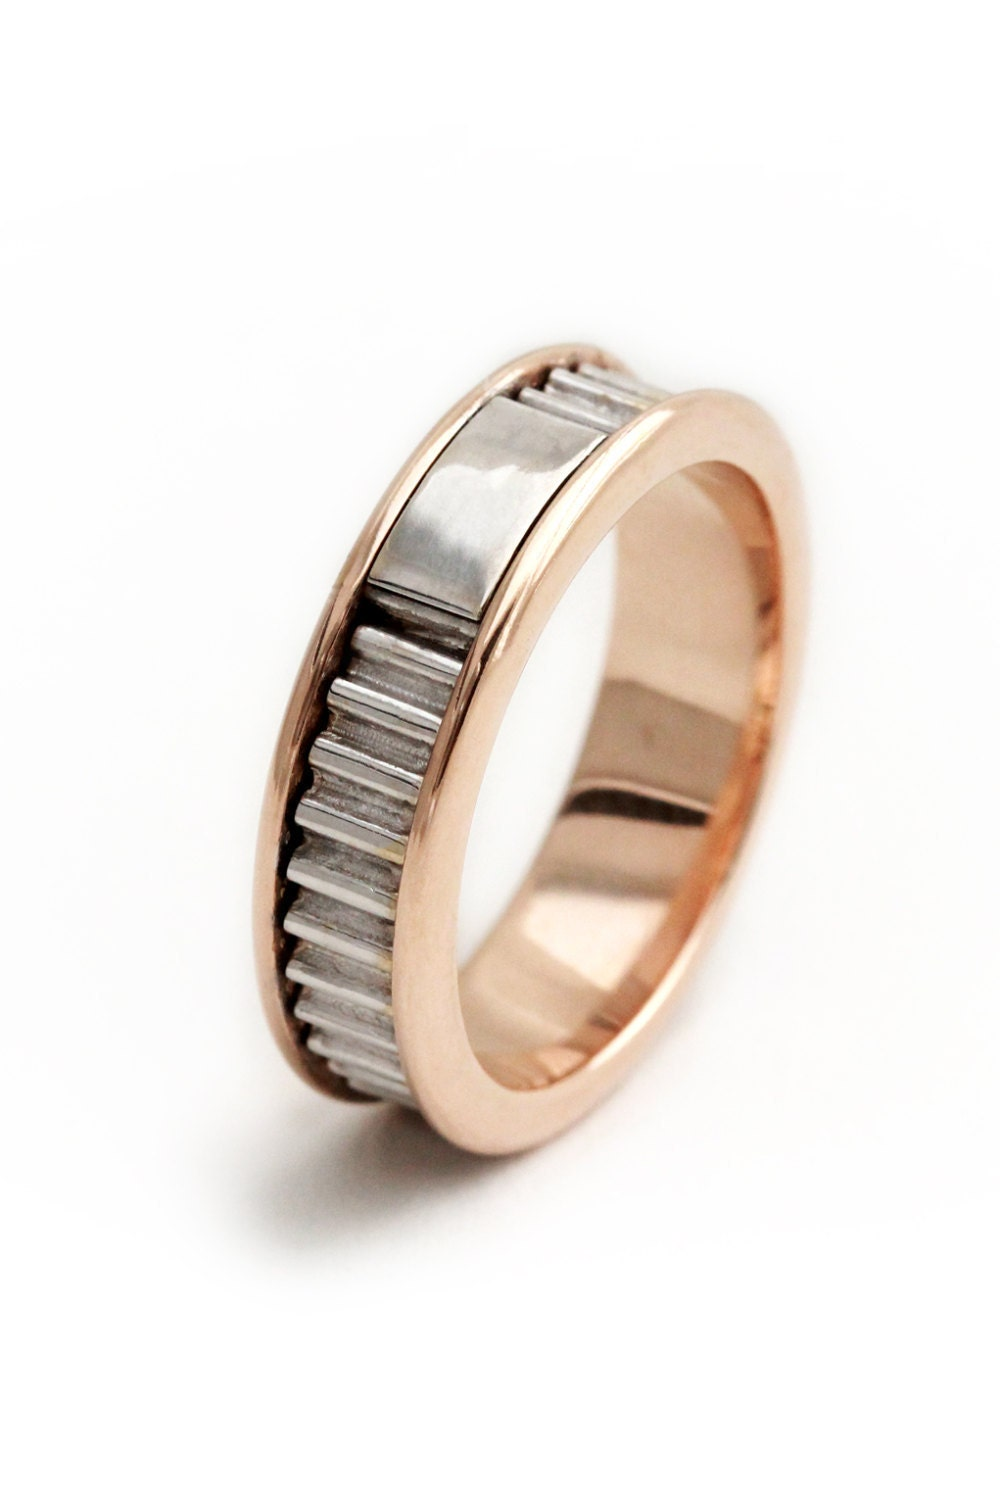 14k rose gold with 14k white gold ring mens wedding band. Black Bedroom Furniture Sets. Home Design Ideas